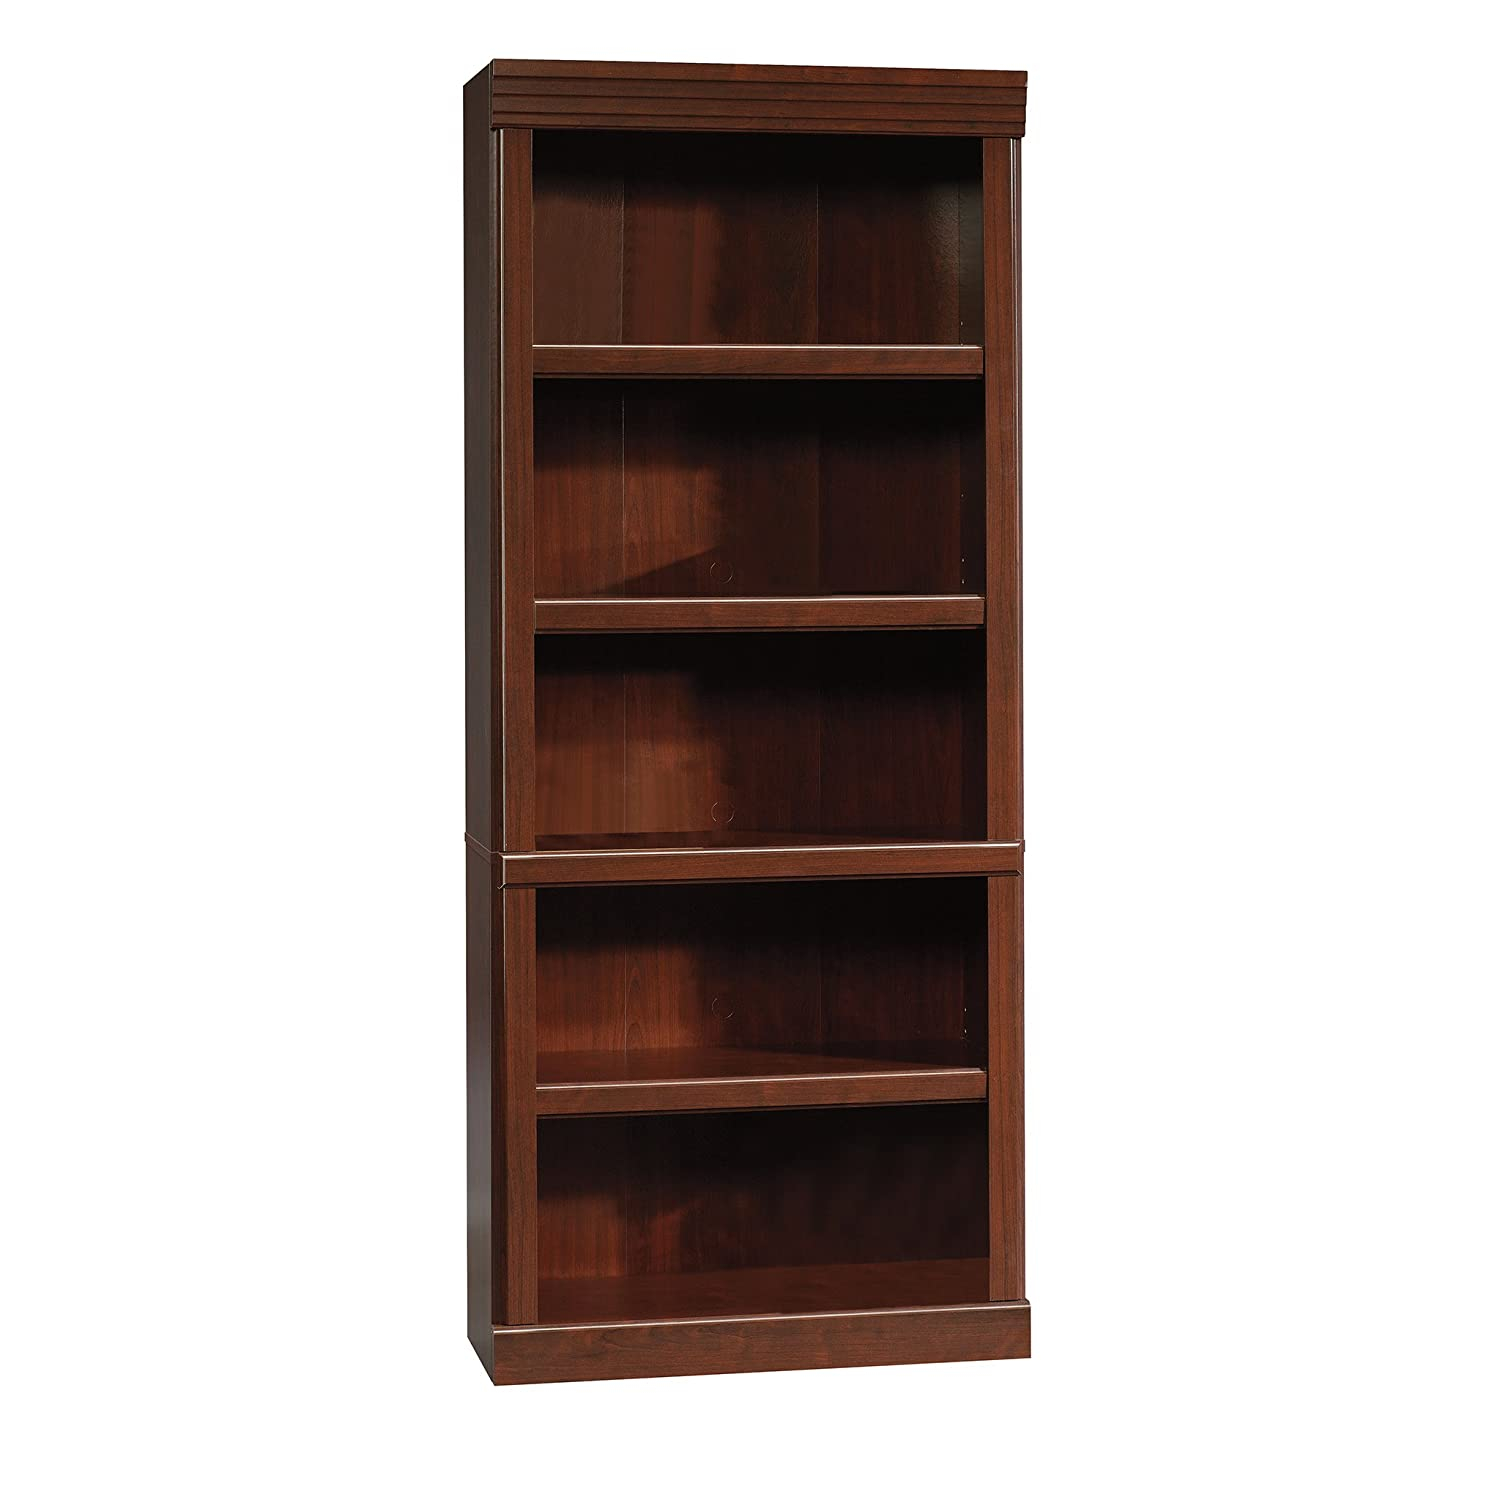 Sauder Heritage Hill Library, Classic Cherry finish